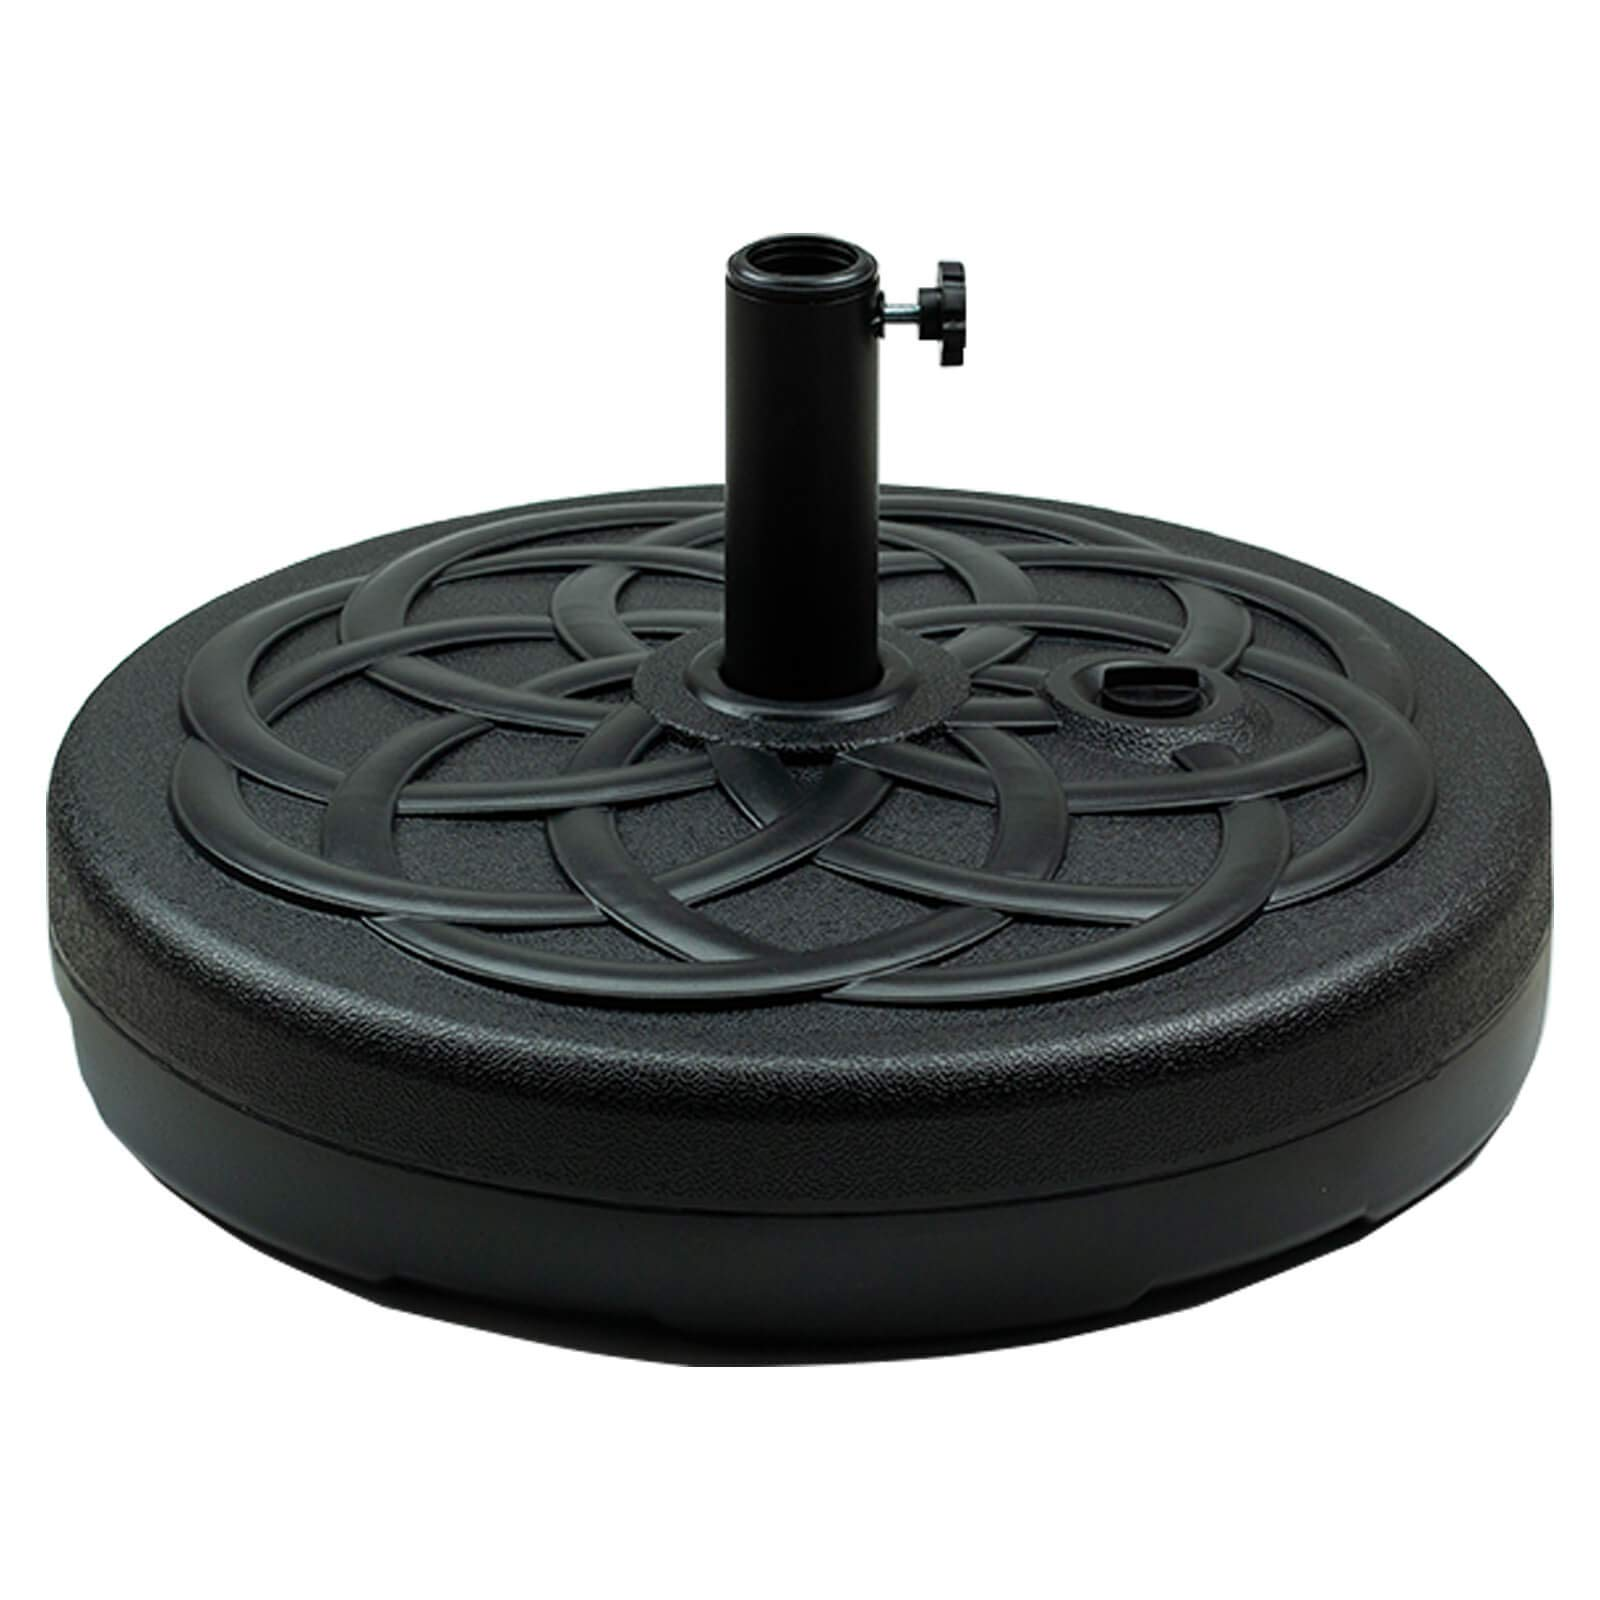 Orgrimmar Patio Umbrella Base 25.4L Heavy Duty Round Patio Umbrella Base Stand Water Filled Umbrella Base Stand for Outdoor